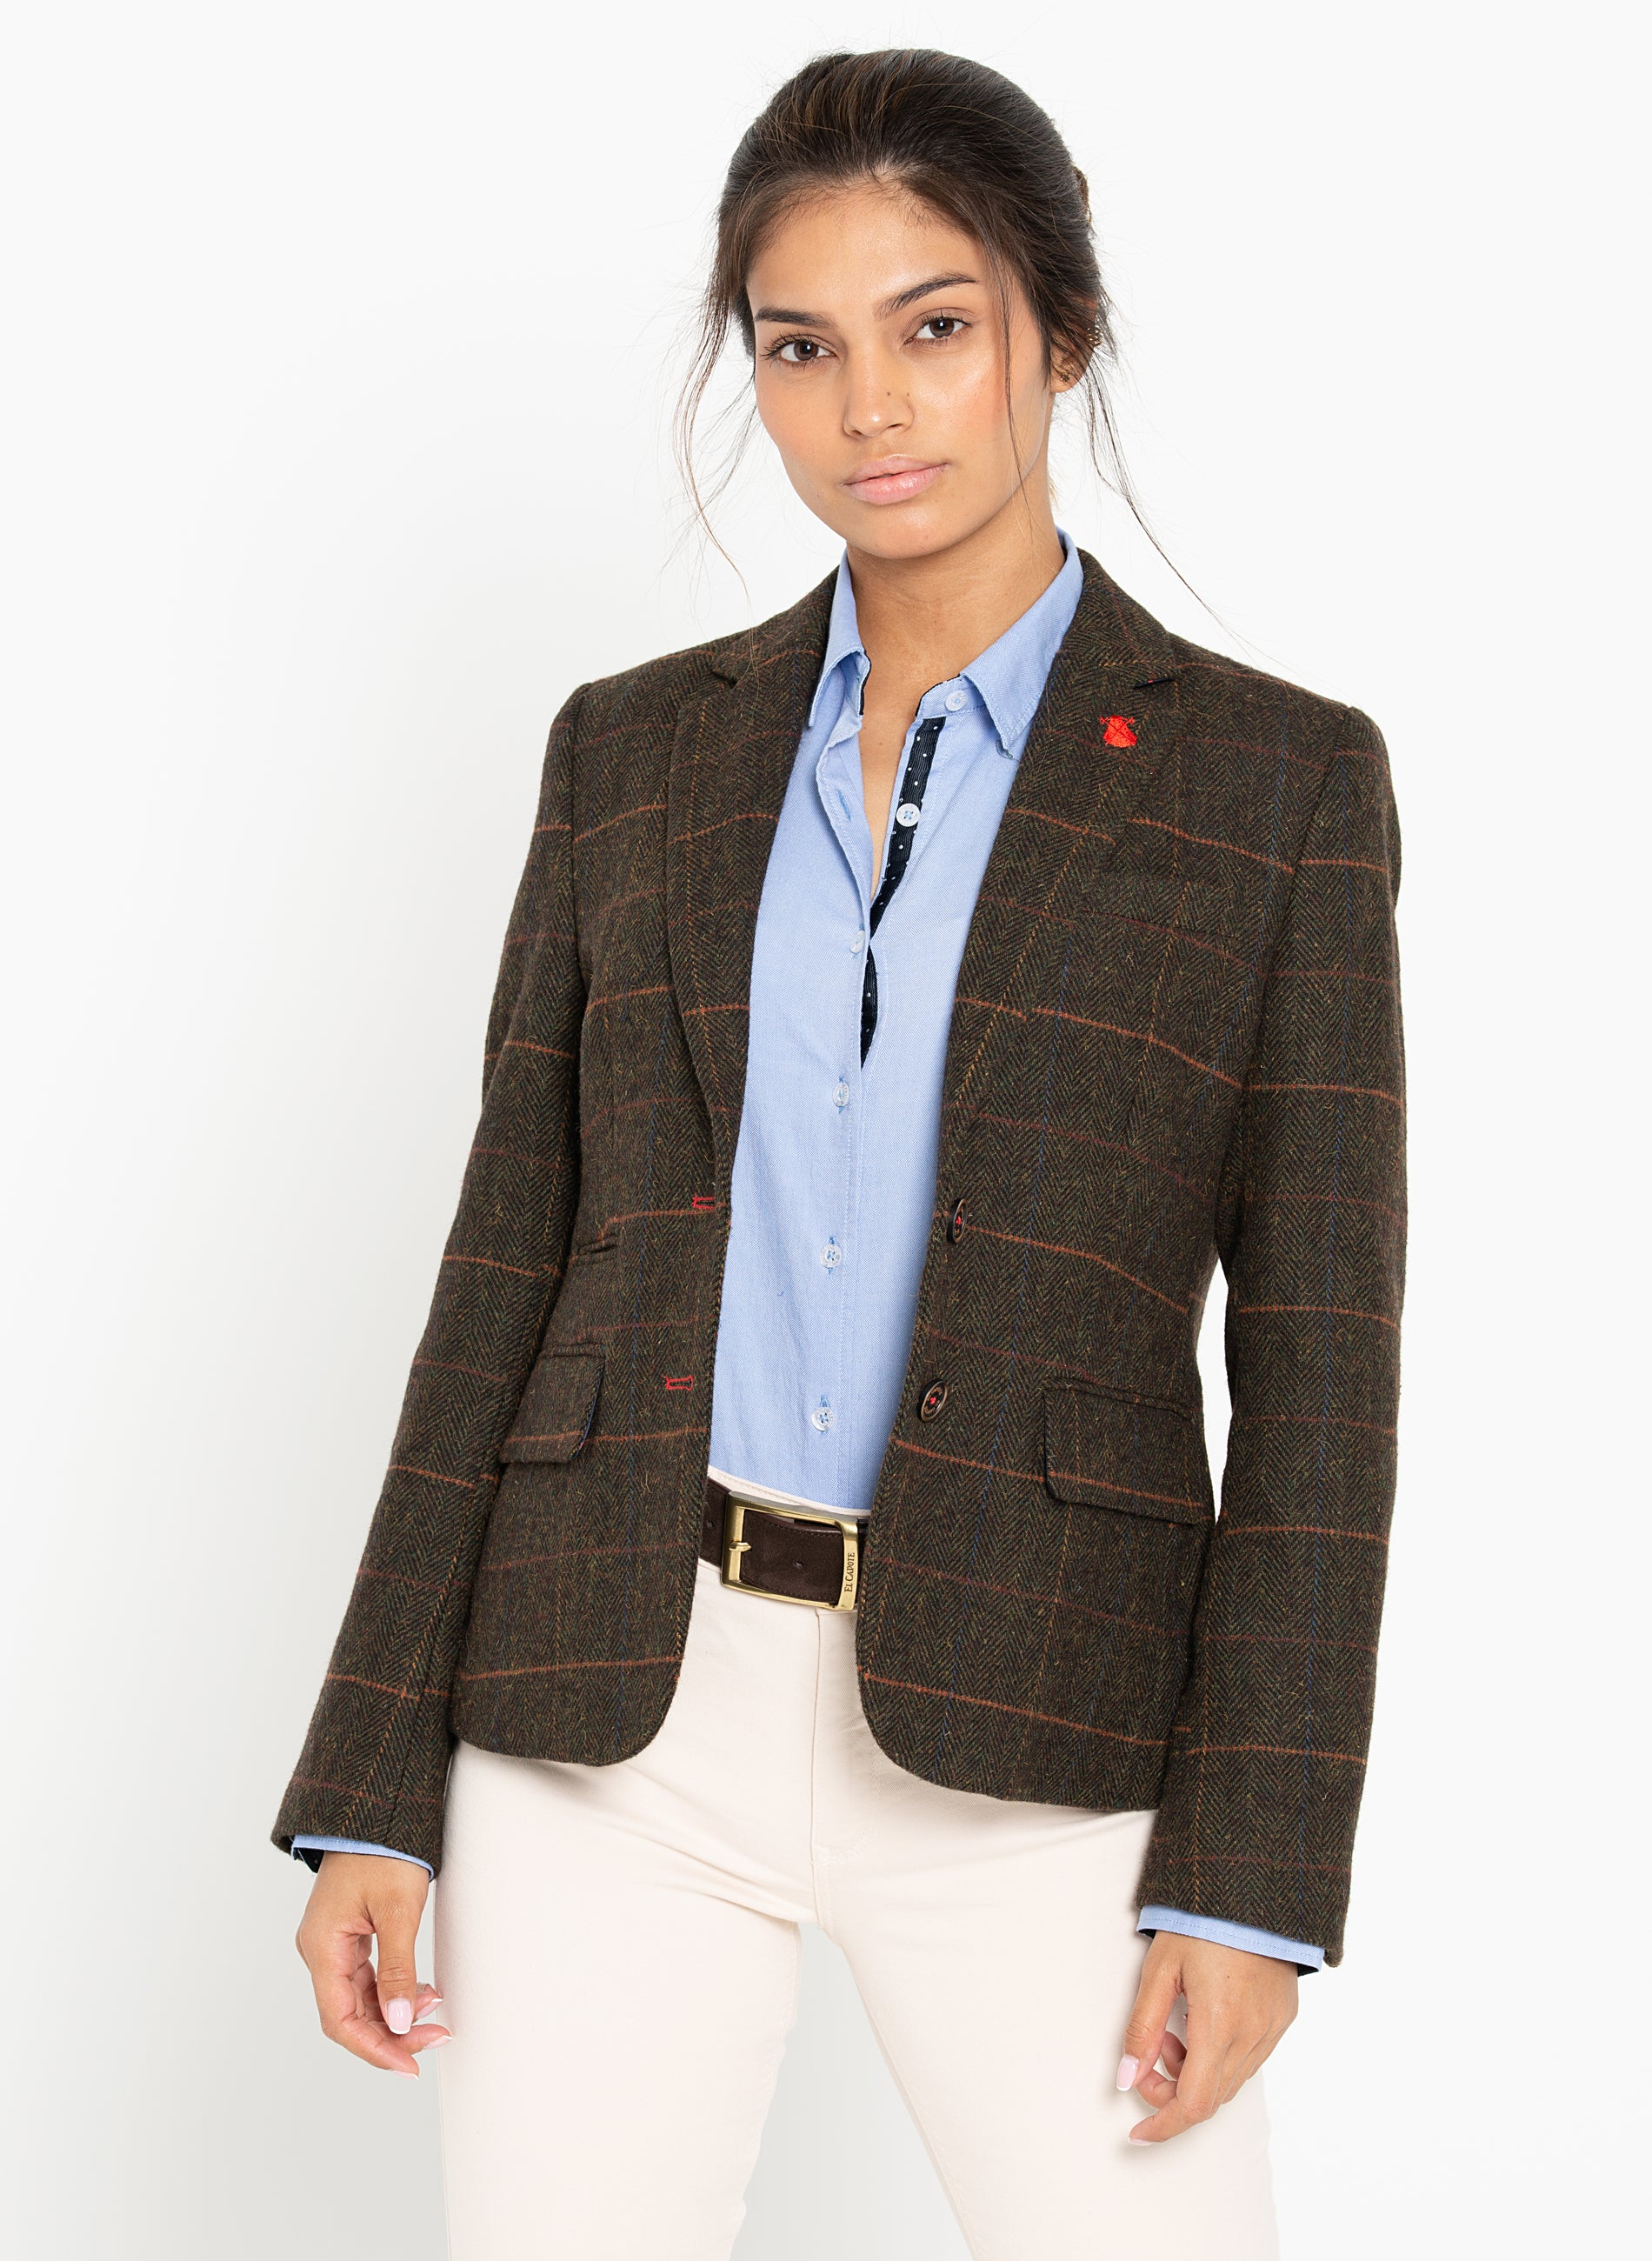 Green Blazer Elbow Patches Pink Capote Woman